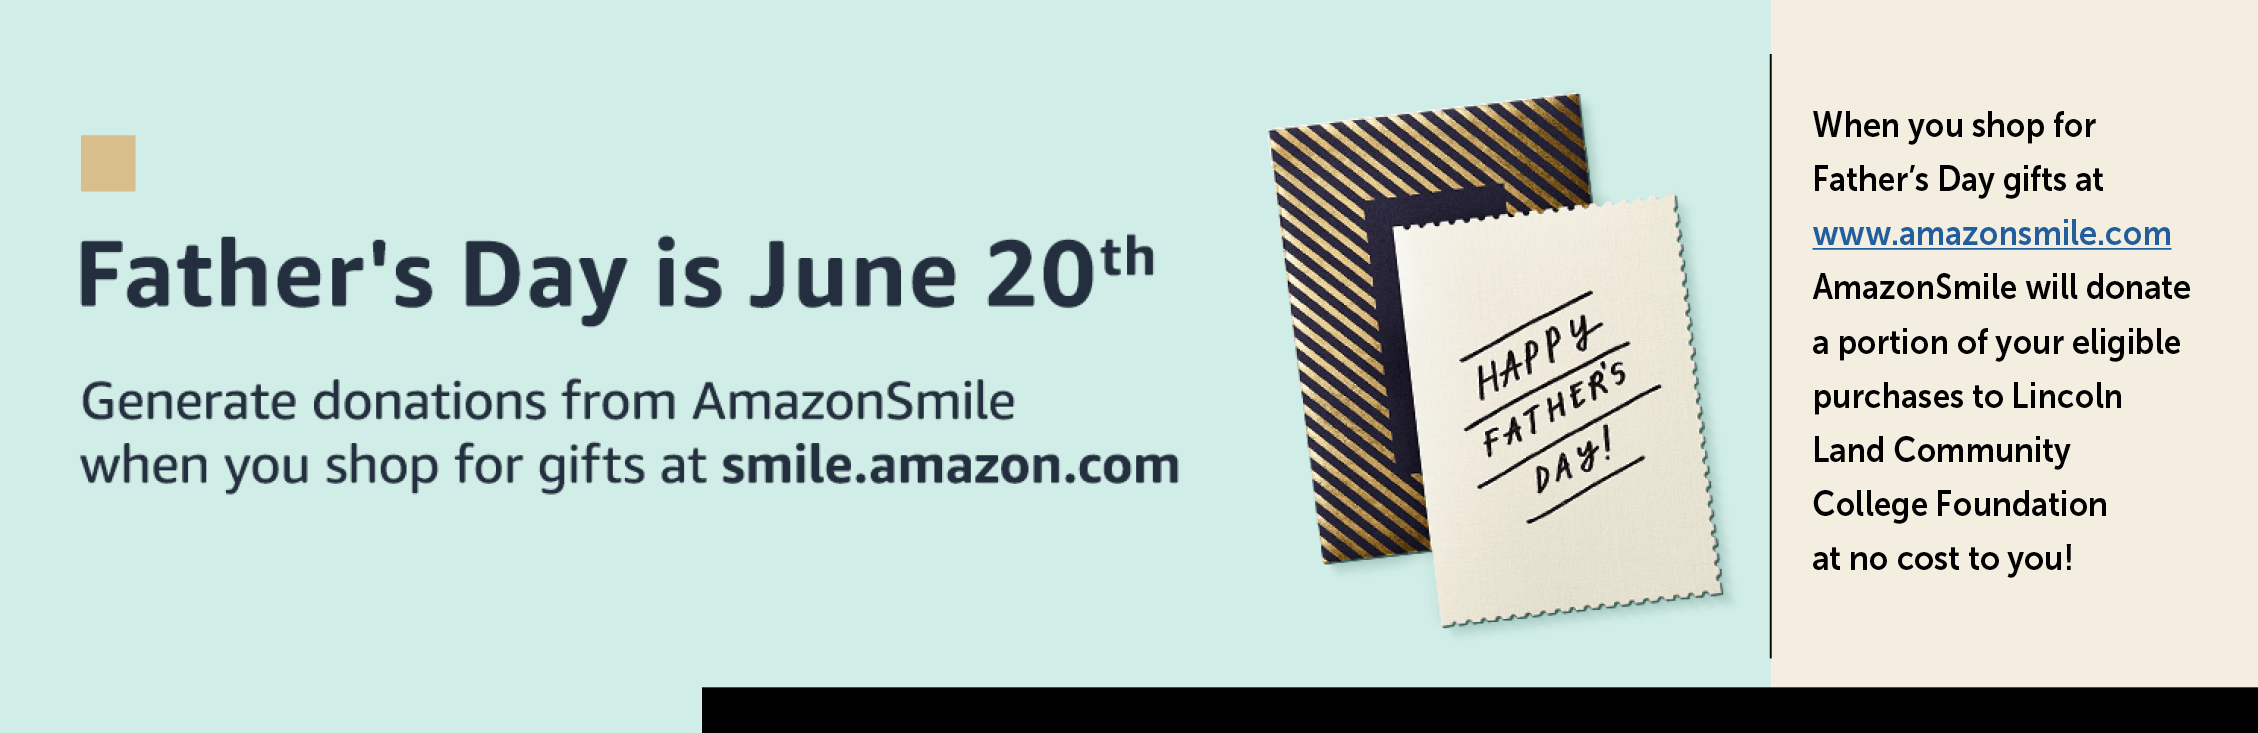 Happy Father's Day! Father's Day is June 20th. Generate donations from AmazonSmile when you shop for gifts at smile.zmazon.com. When you shop for Father's Day gifts at www.amazonsmile.com AmazonSmile will donate a portion of your eligible purchases to Lincoln Land Community College Foundation at no cost to you!